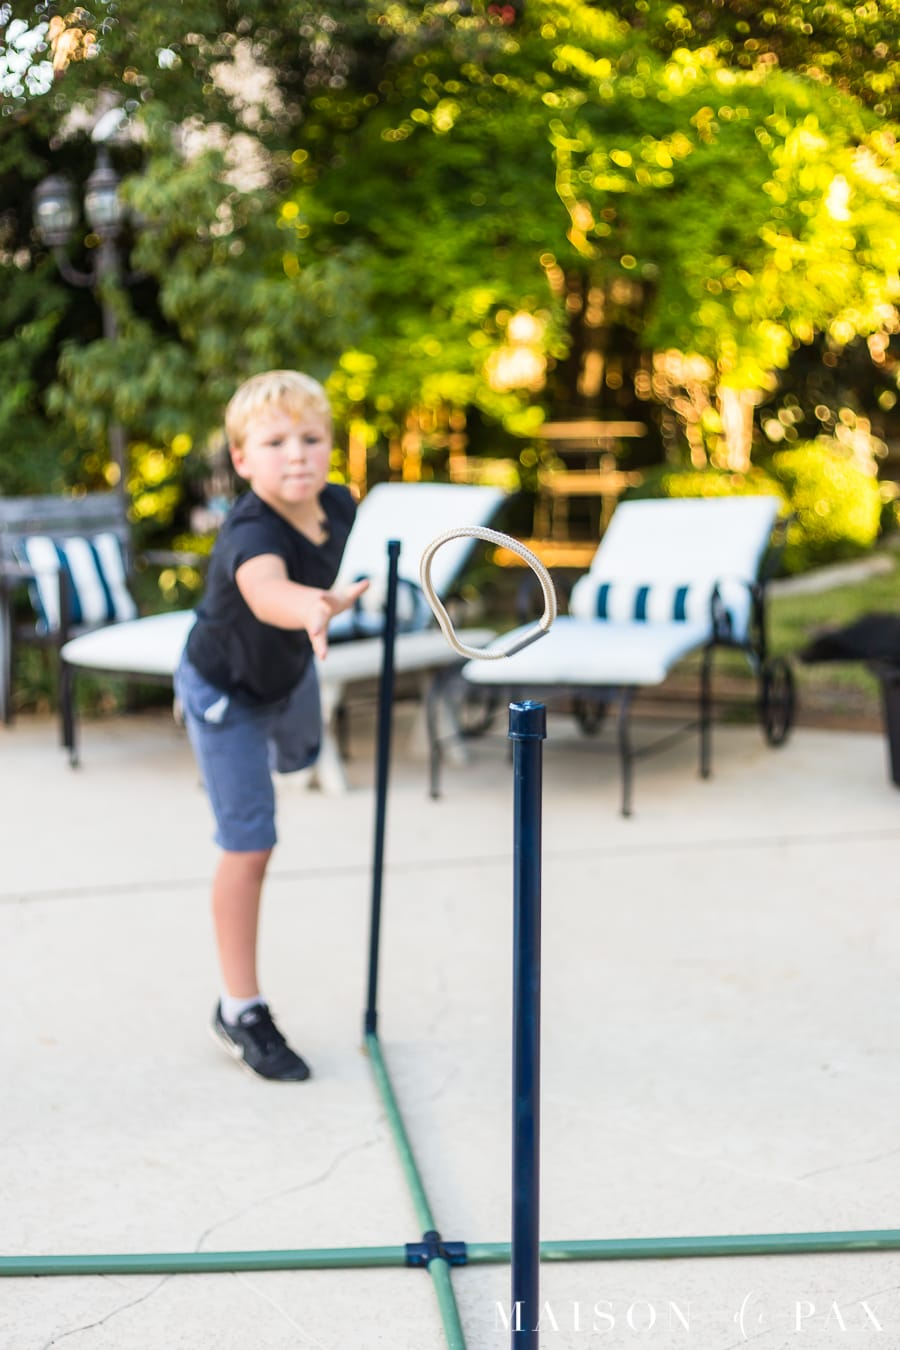 Make giant ring toss with your kids: find this plus tips for completing project with kids! #familyfun #familyproject #outdoorgames #kidfriendlyproject #diyproject